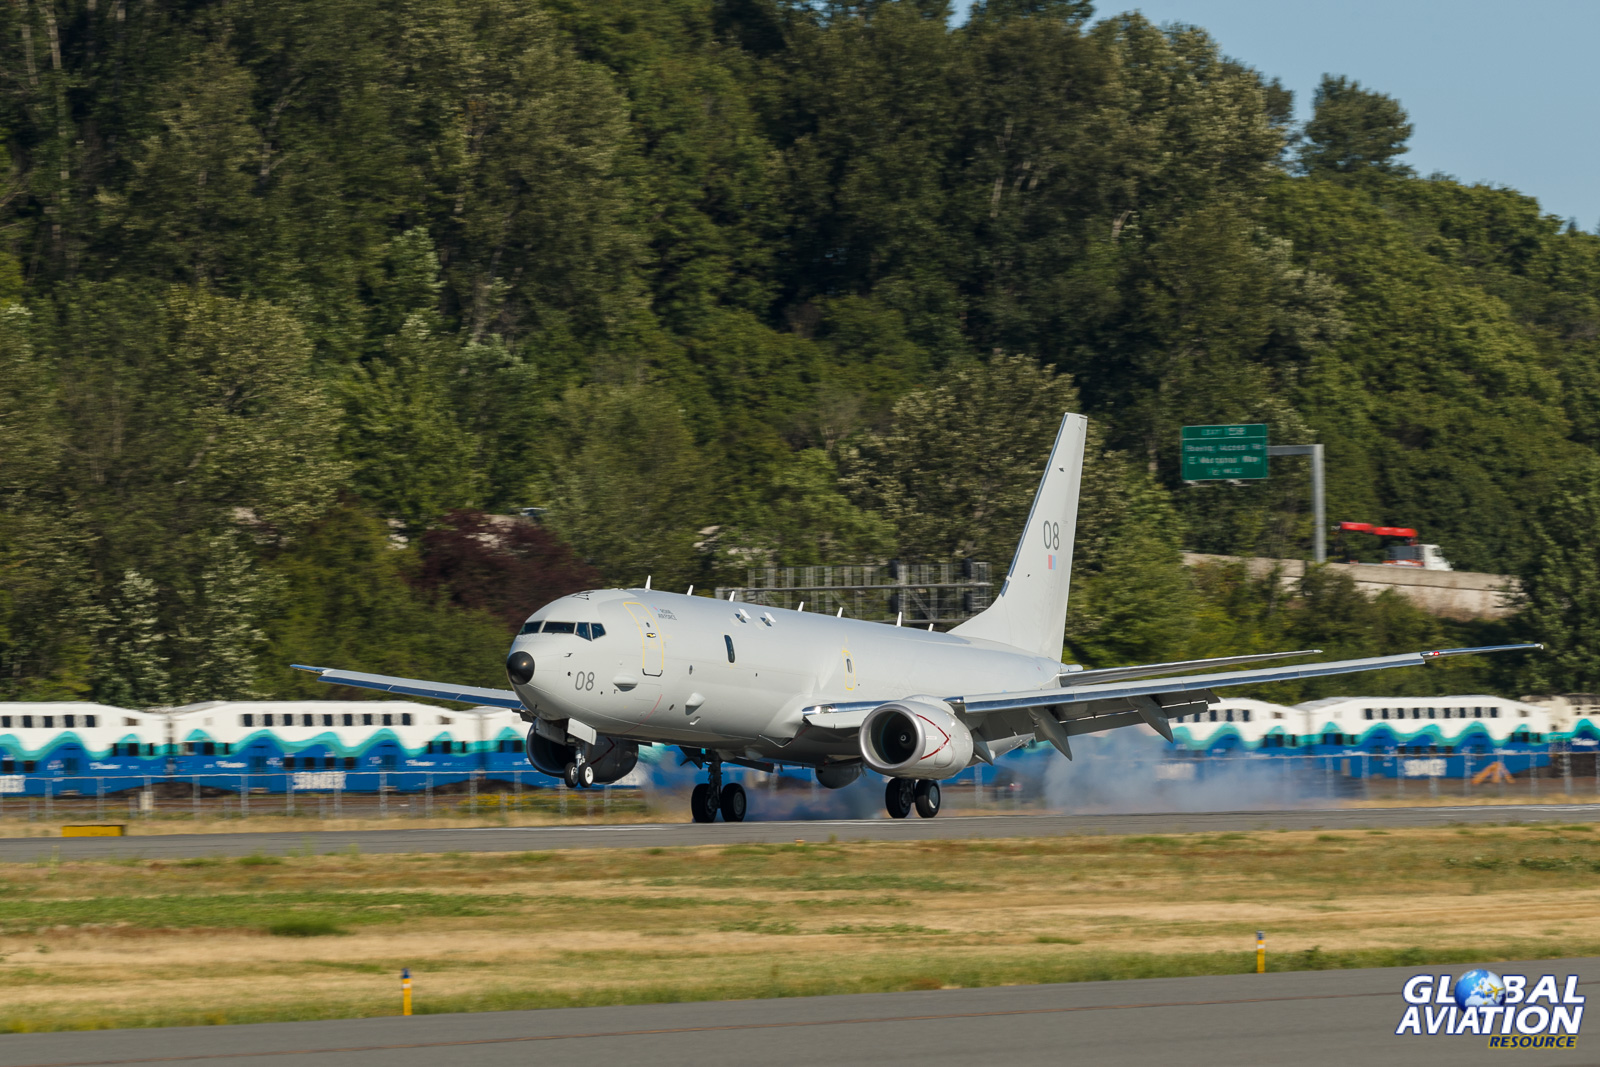 Touchdown at Boeing Field after the eighth RAF P-8's first flight - © Rob Edgcumbe - Global Aviation Resource